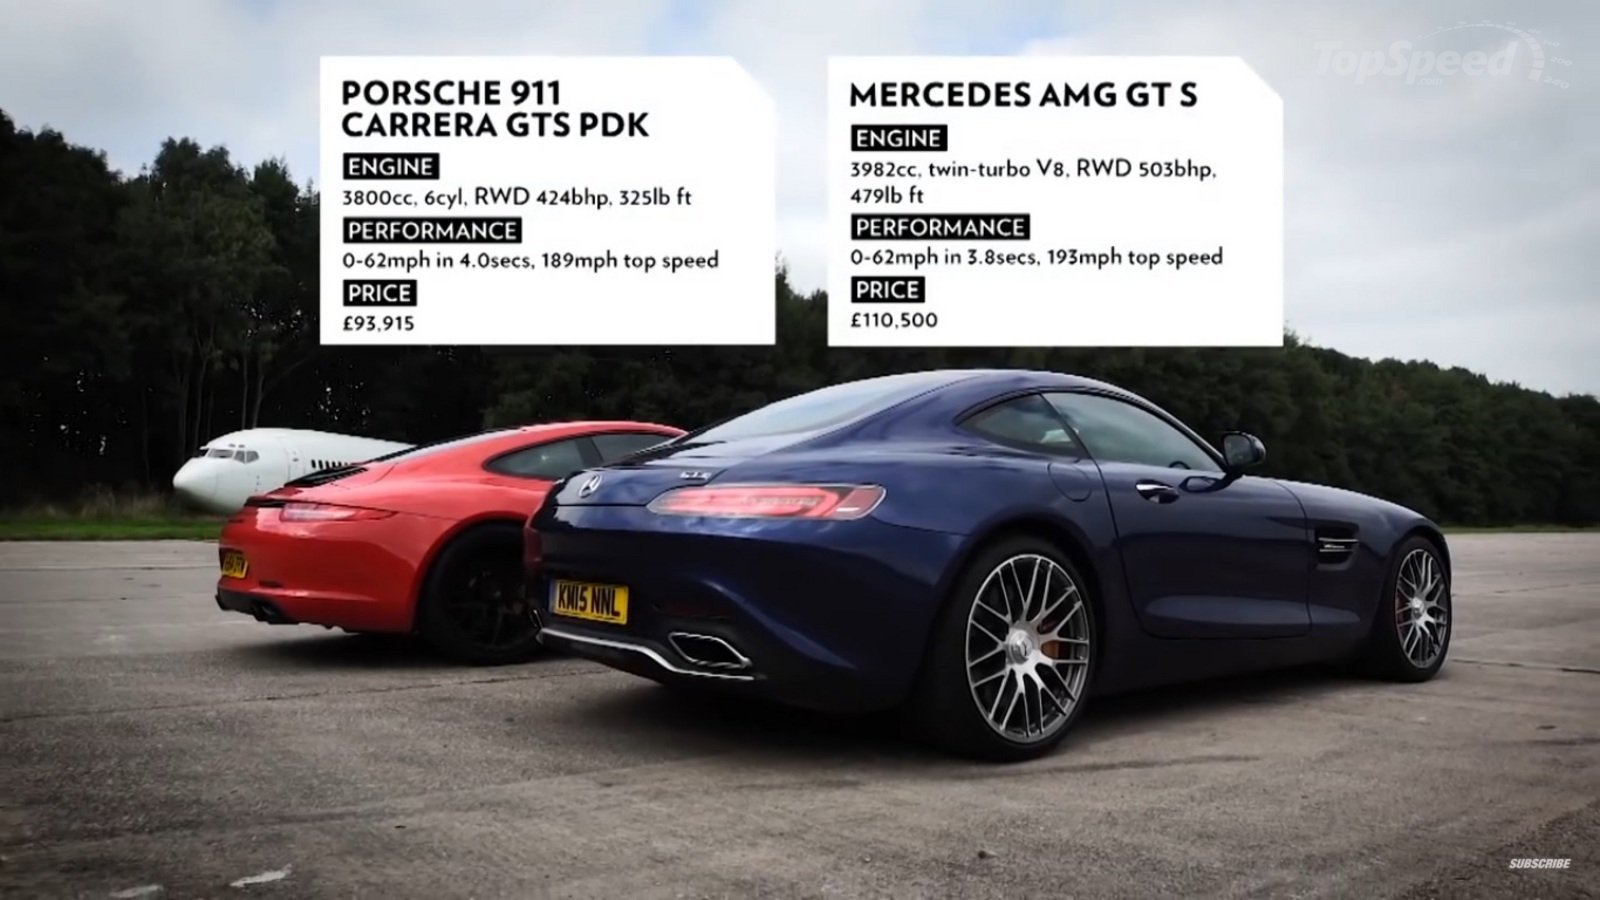 top gear lines up the mercedes amg gt s against the porsche 911 carrera gts video news. Black Bedroom Furniture Sets. Home Design Ideas